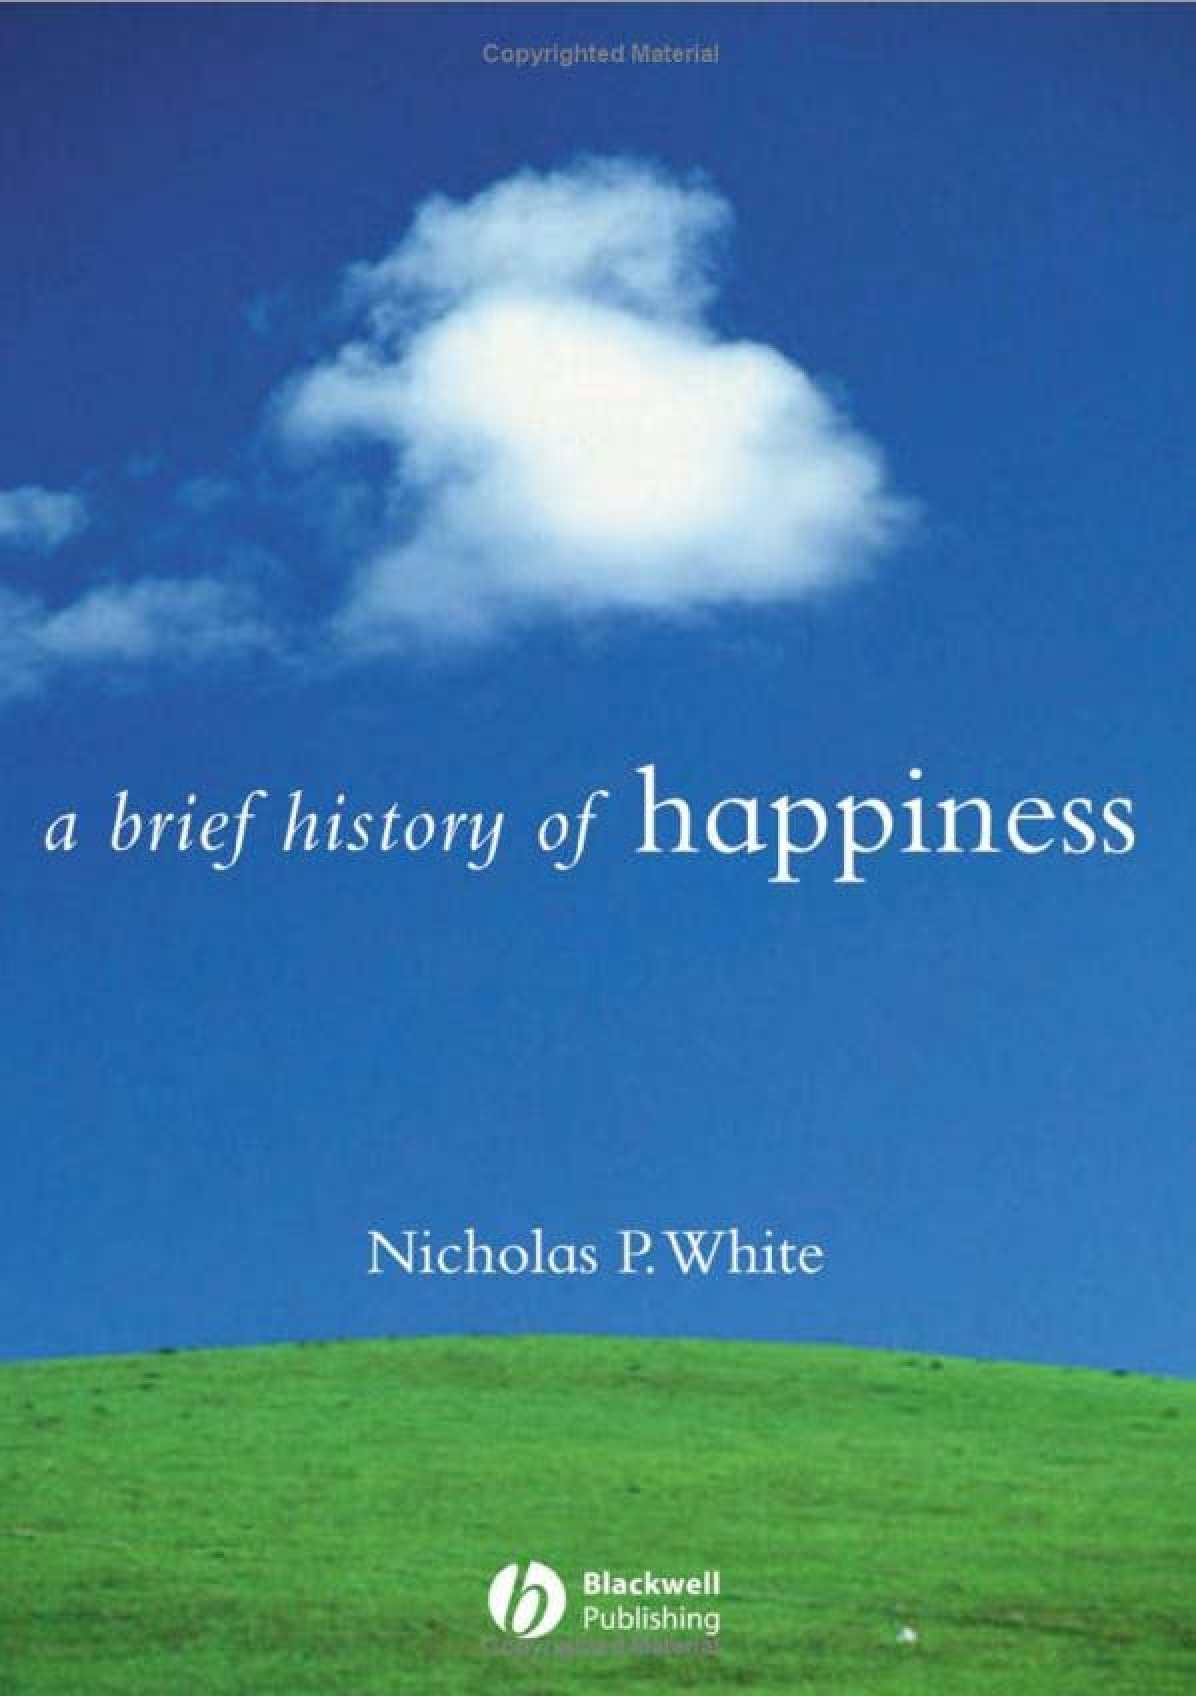 a history of happiness